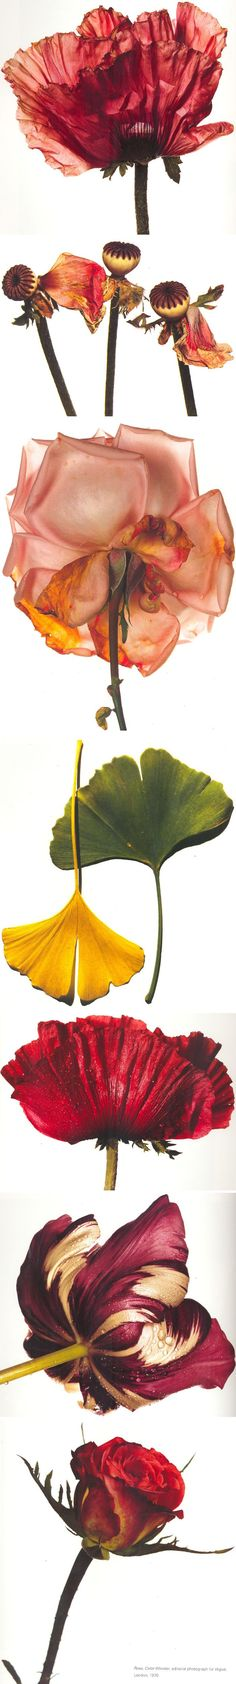 .. Irving Penn ..i La la la LOVE doing this to any flowers i recieve from my bf to conserve it in an artisic way (: